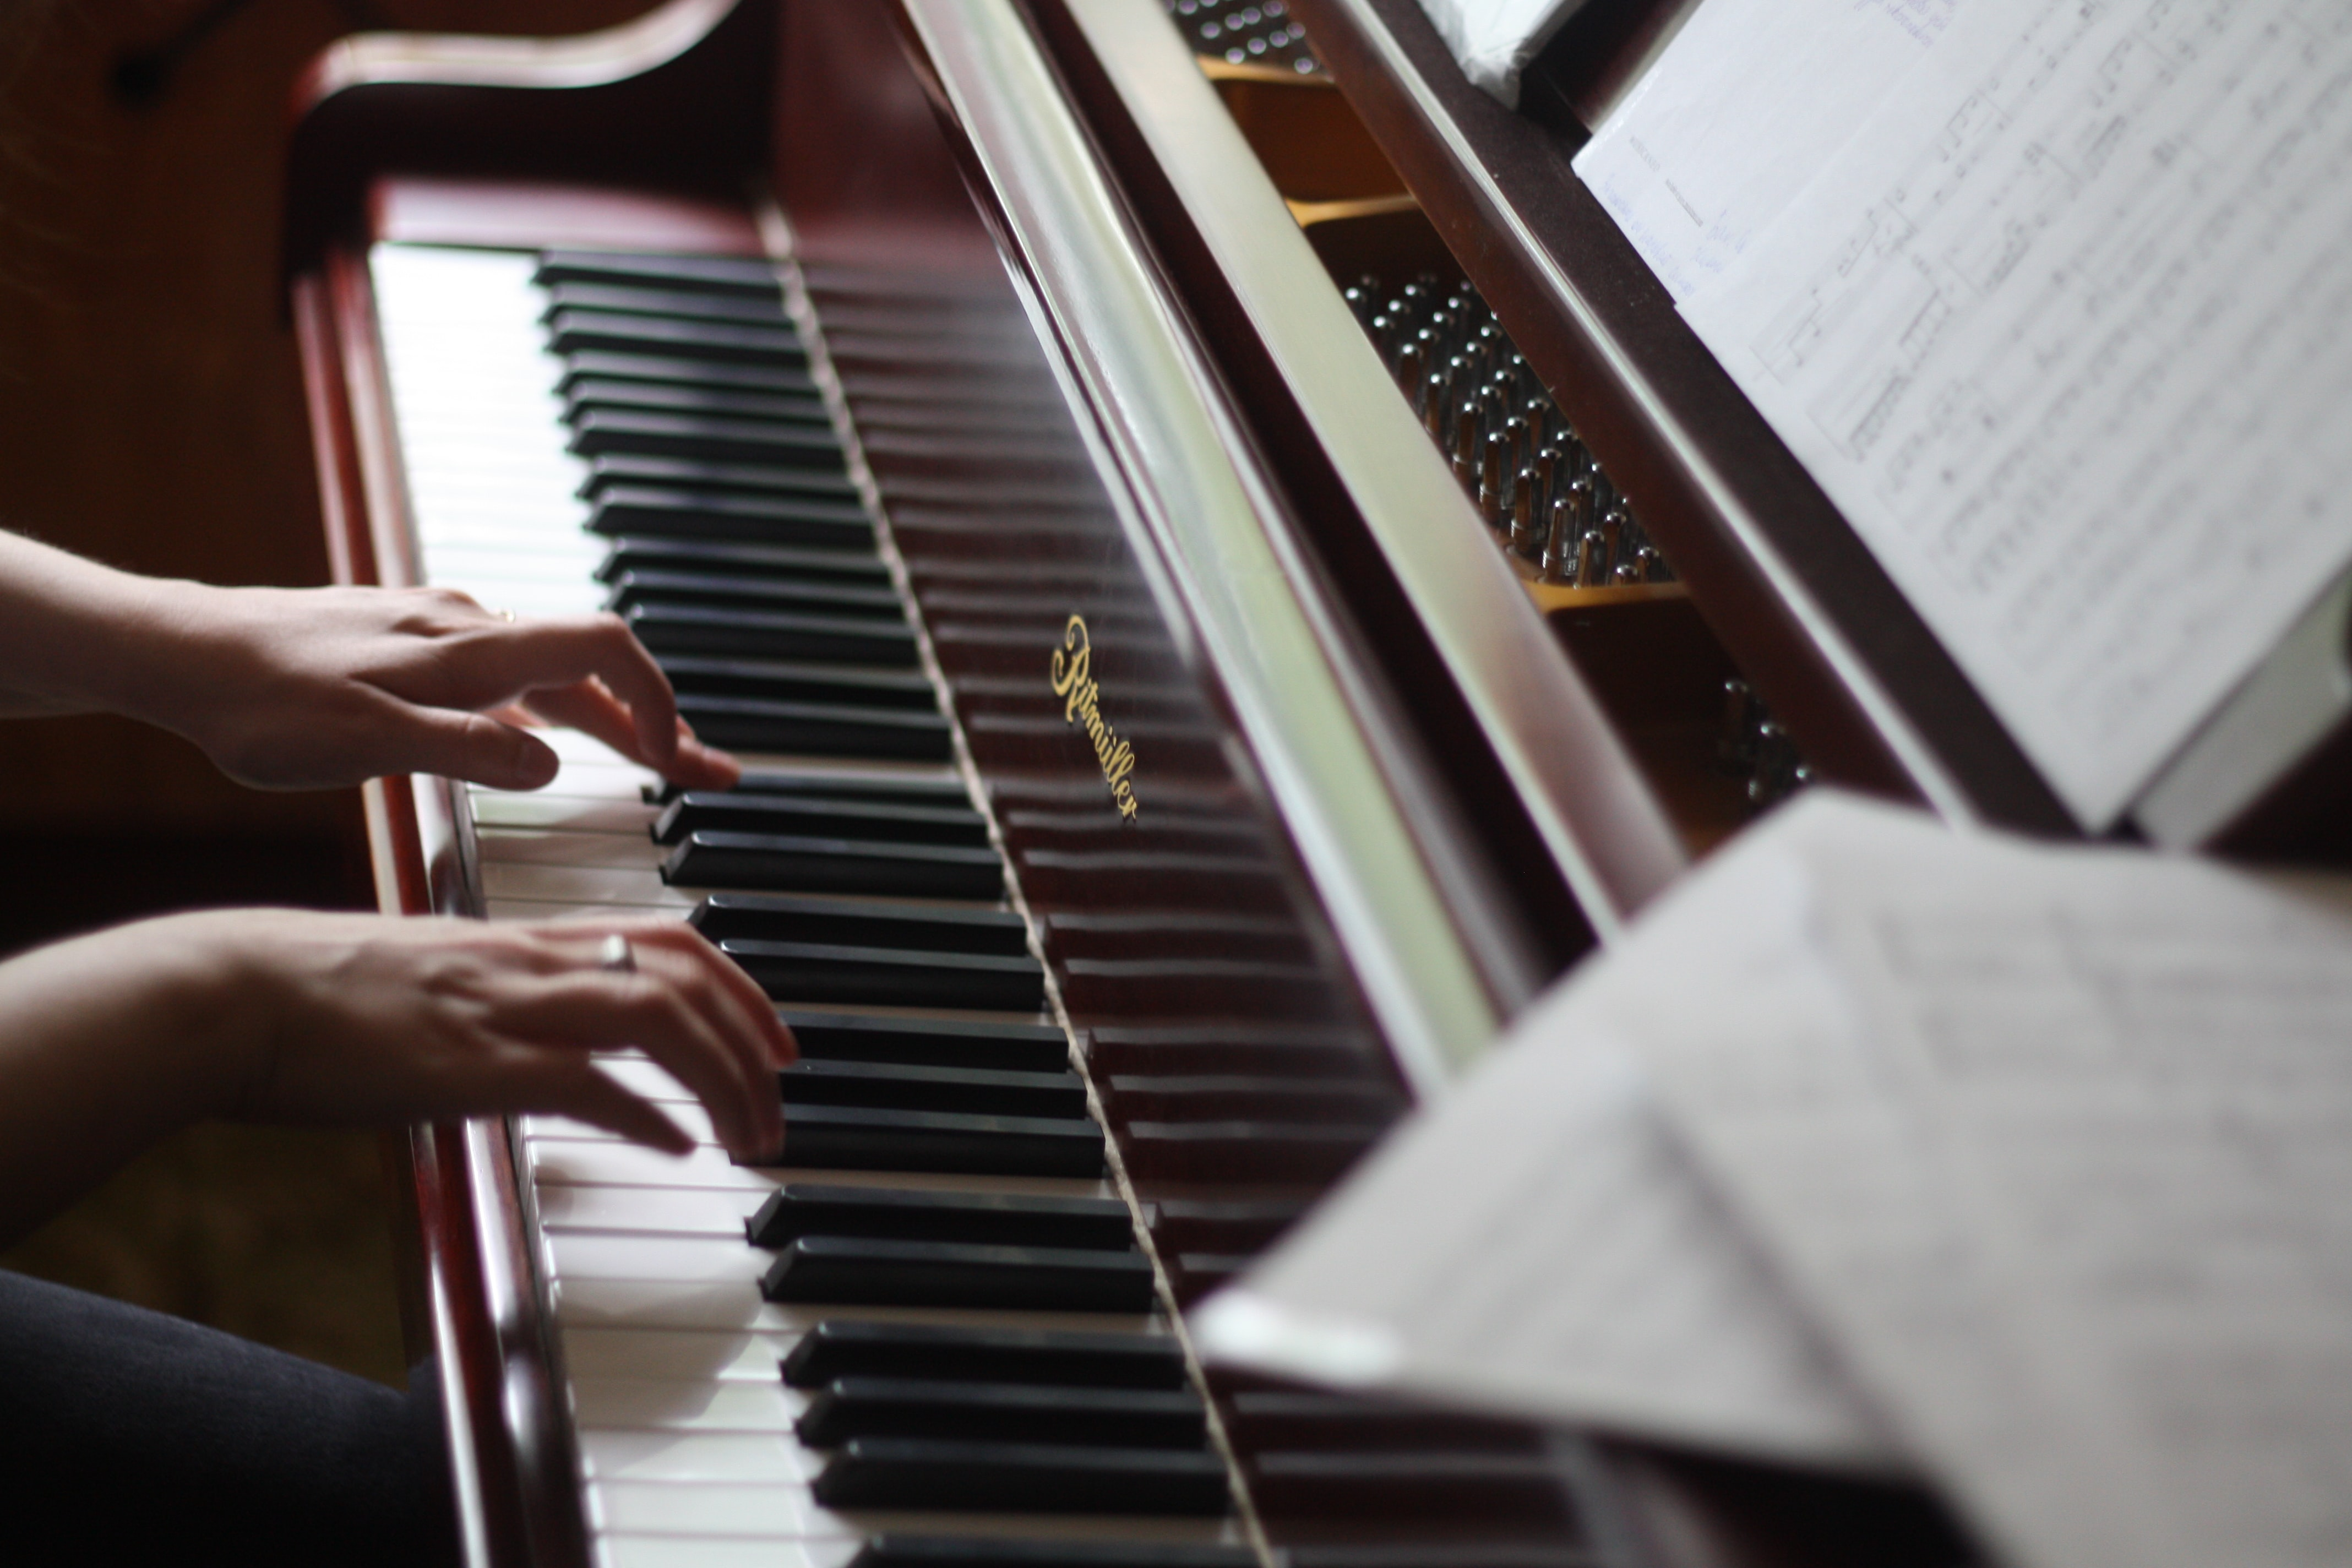 Cropped shot of someone's hands as she plays the piano.